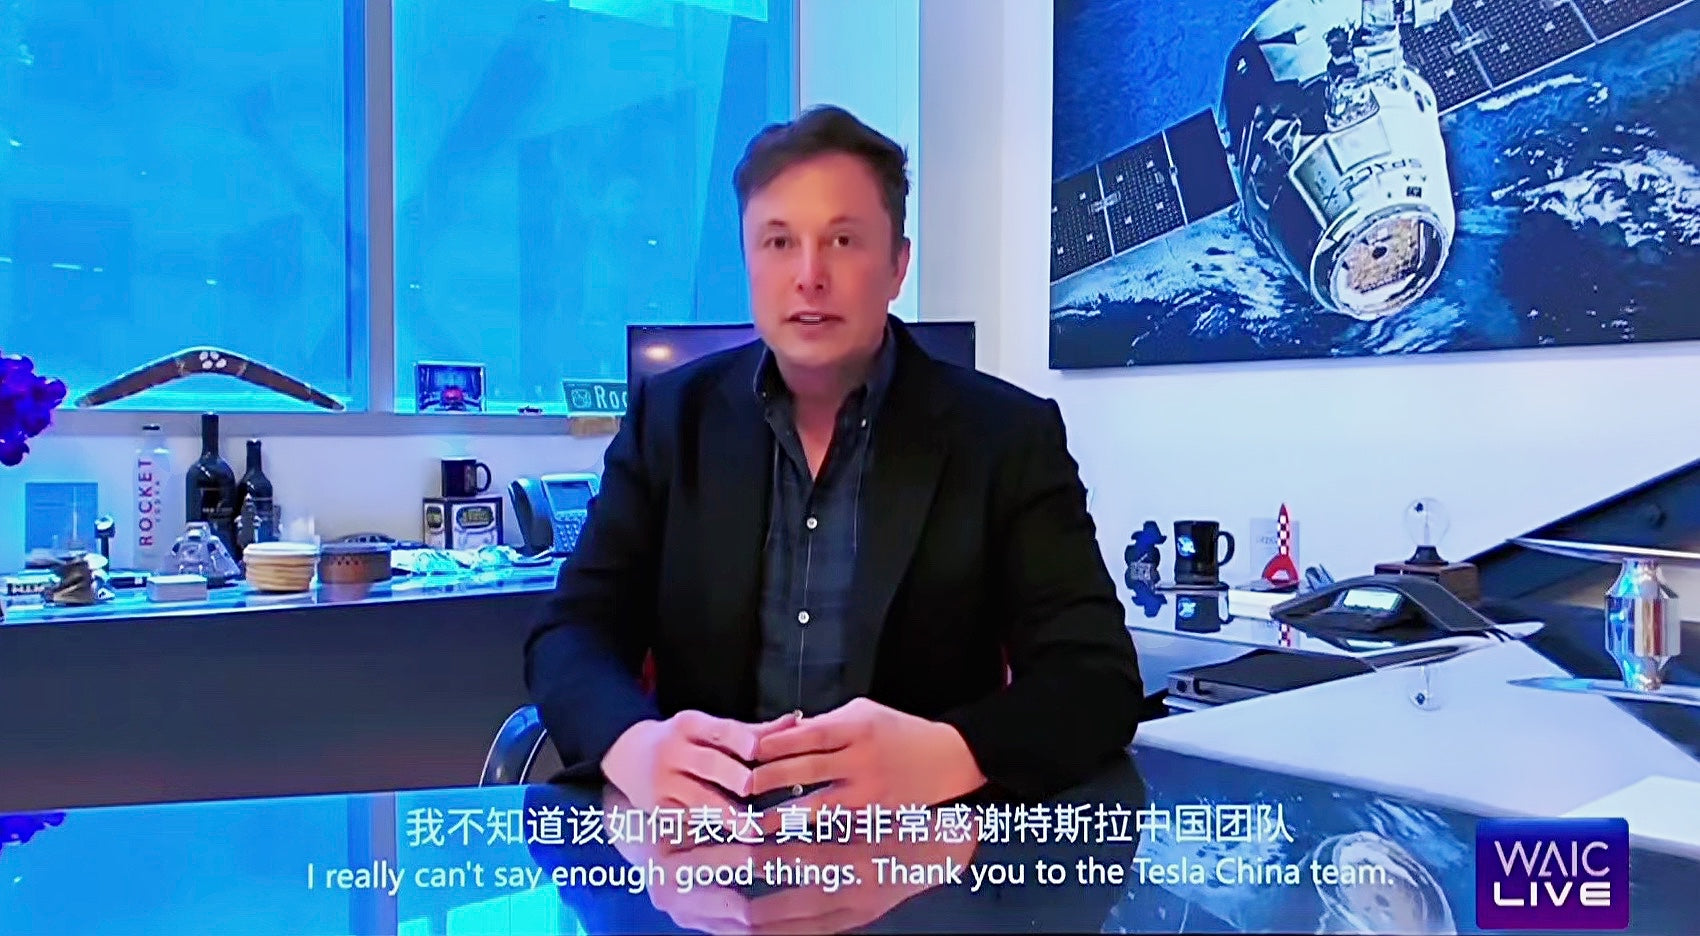 coTesla-China-Elon-Musk-2020-World-AI-Conference